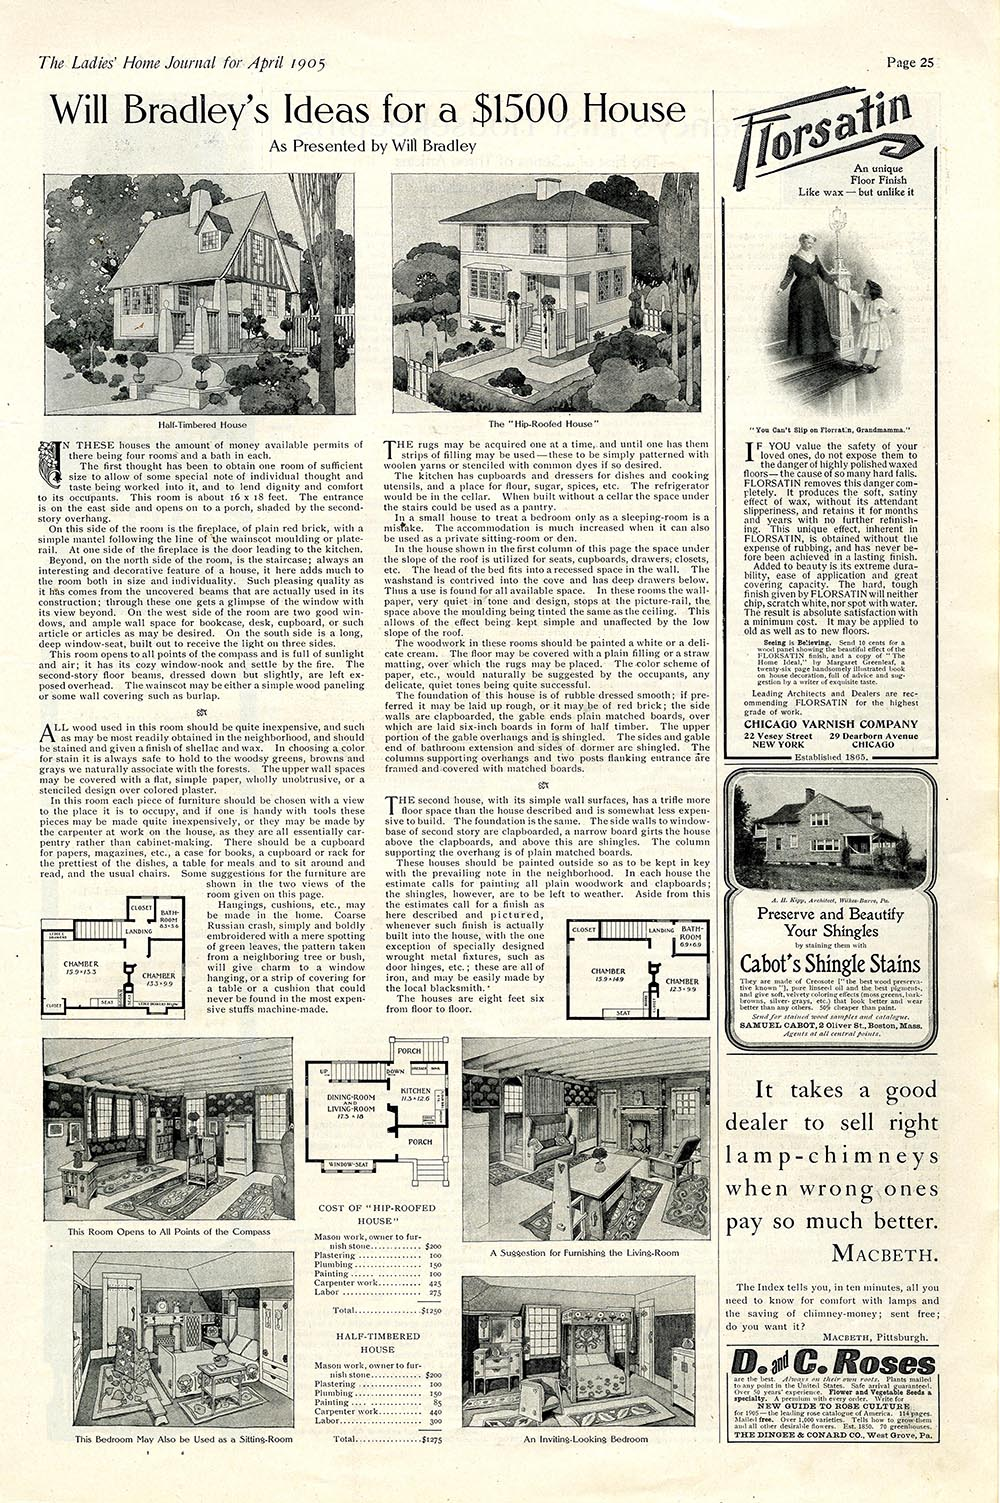 """""""Will Bradley's Ideas for a $1500 House as Presented by Will Bradley,"""" Ladies' Home Journal, April 1905."""